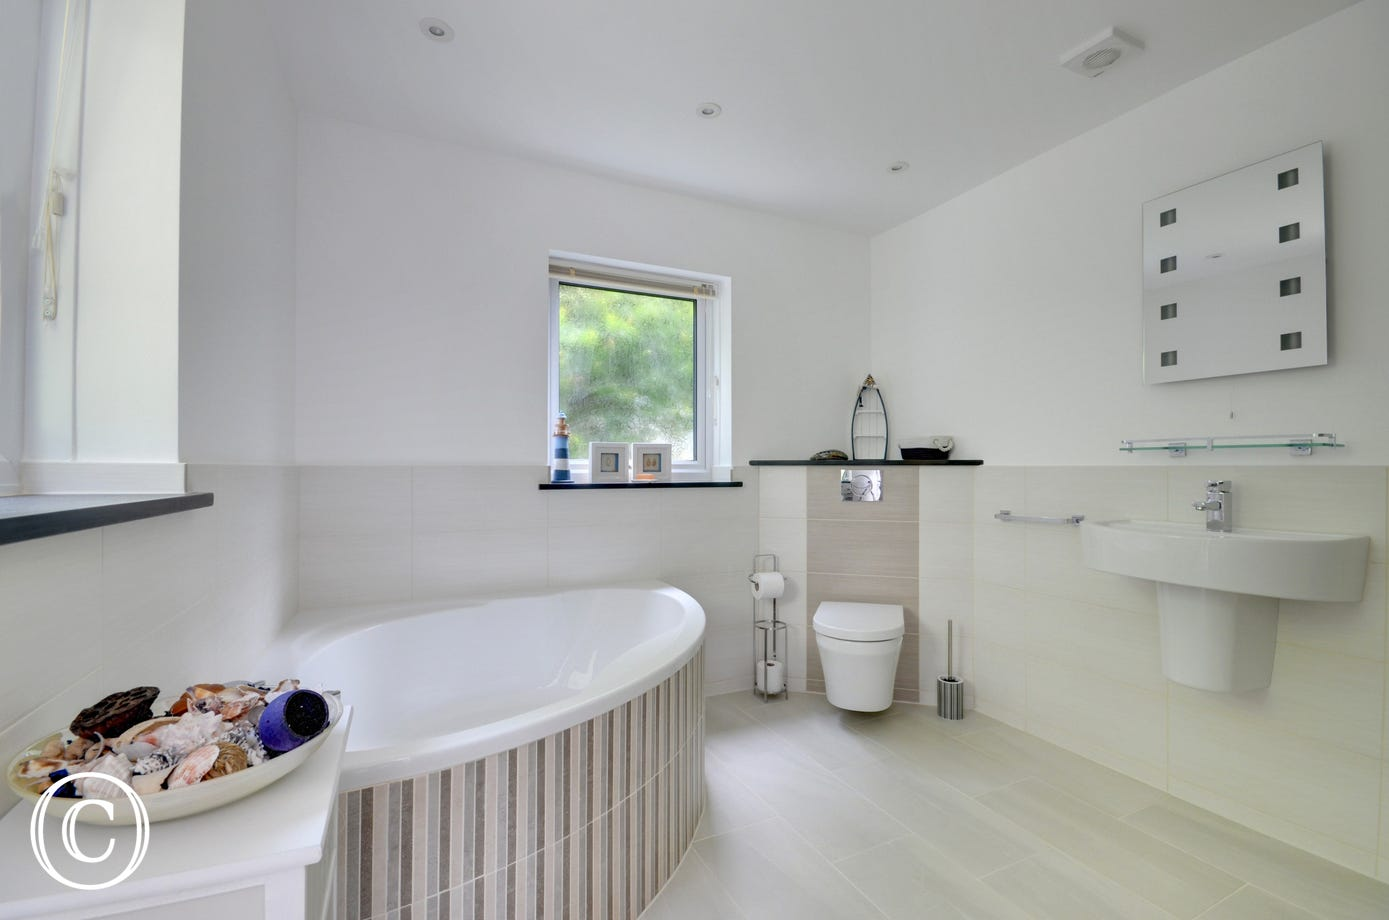 Large family bathroom complete with underfloor heating, luxurious corner bath and walk-in shower